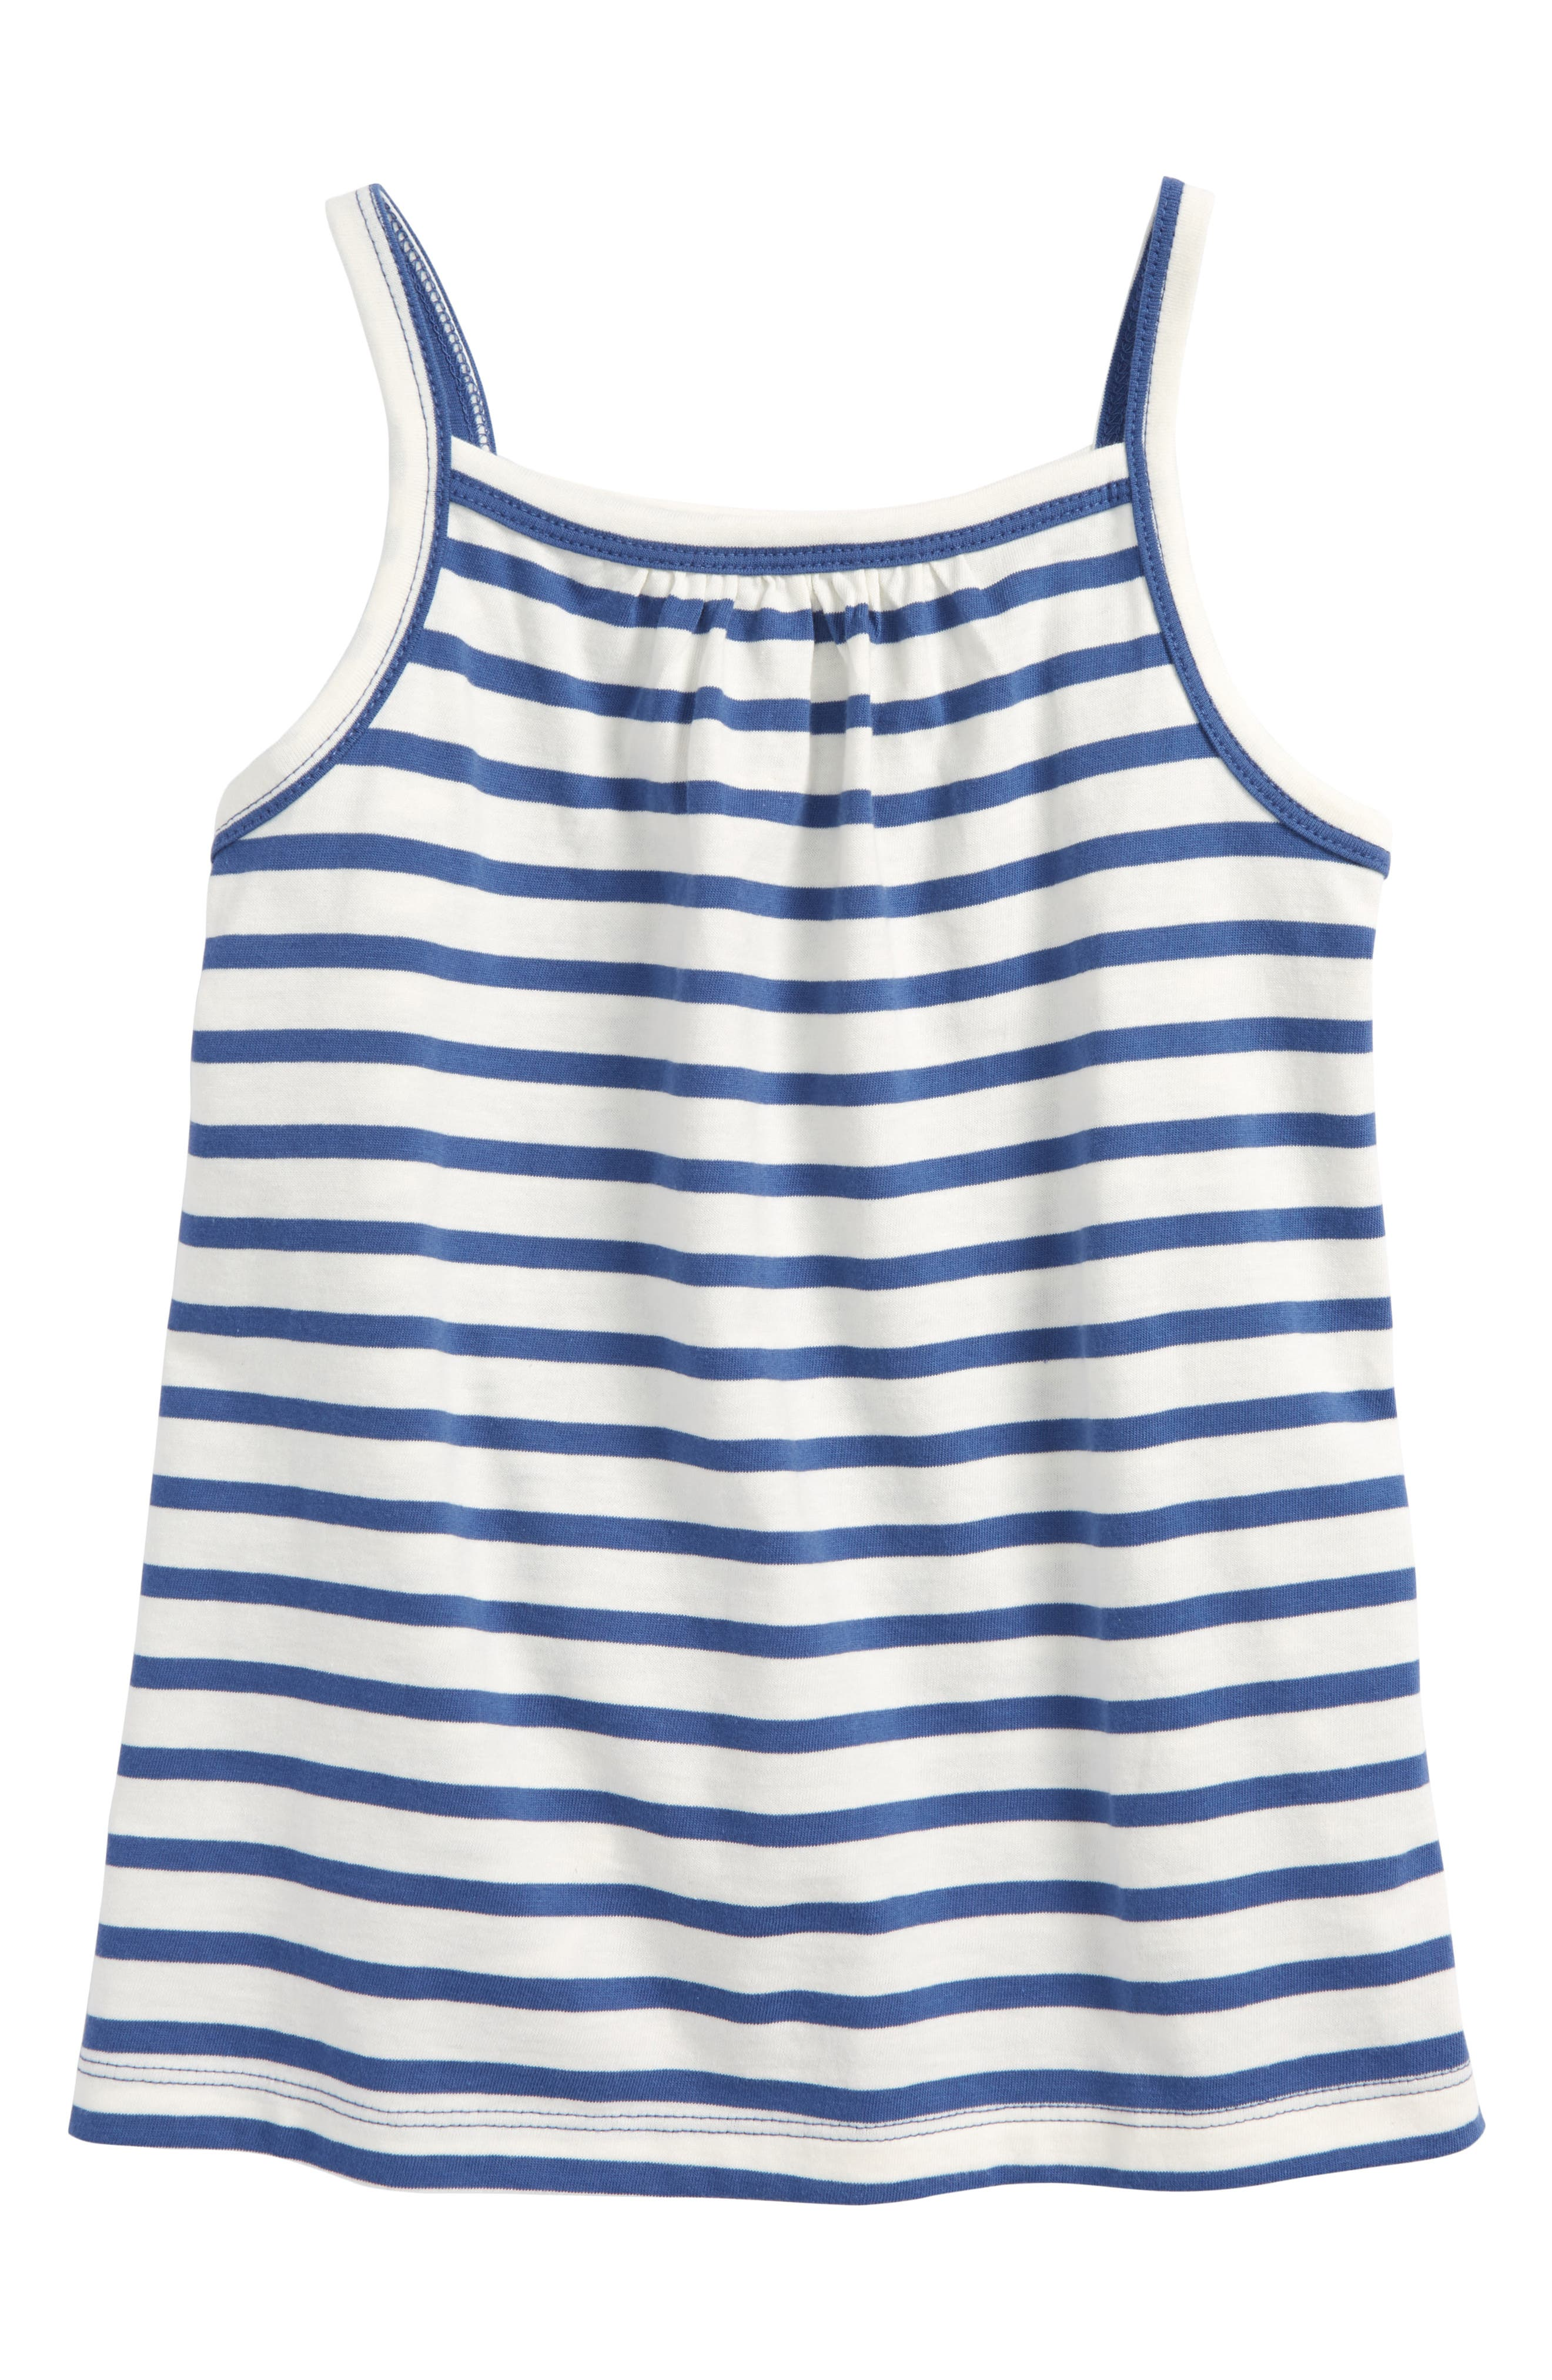 Stripe Summer Tank,                             Main thumbnail 1, color,                             415